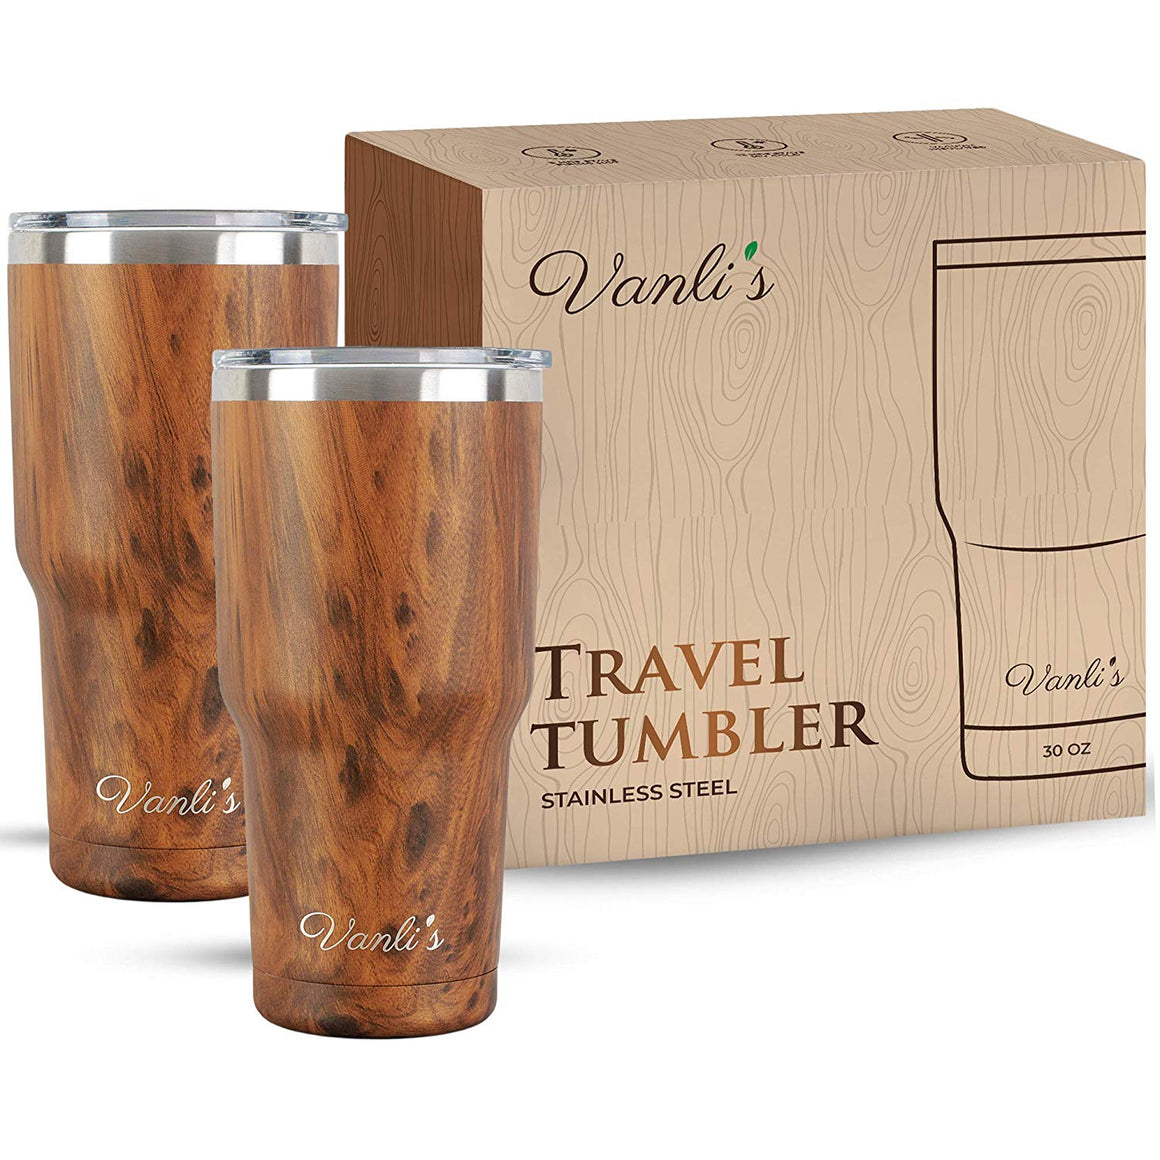 Vanli's Stainless-Steel Insulated Travel Tumbler 30 oz.